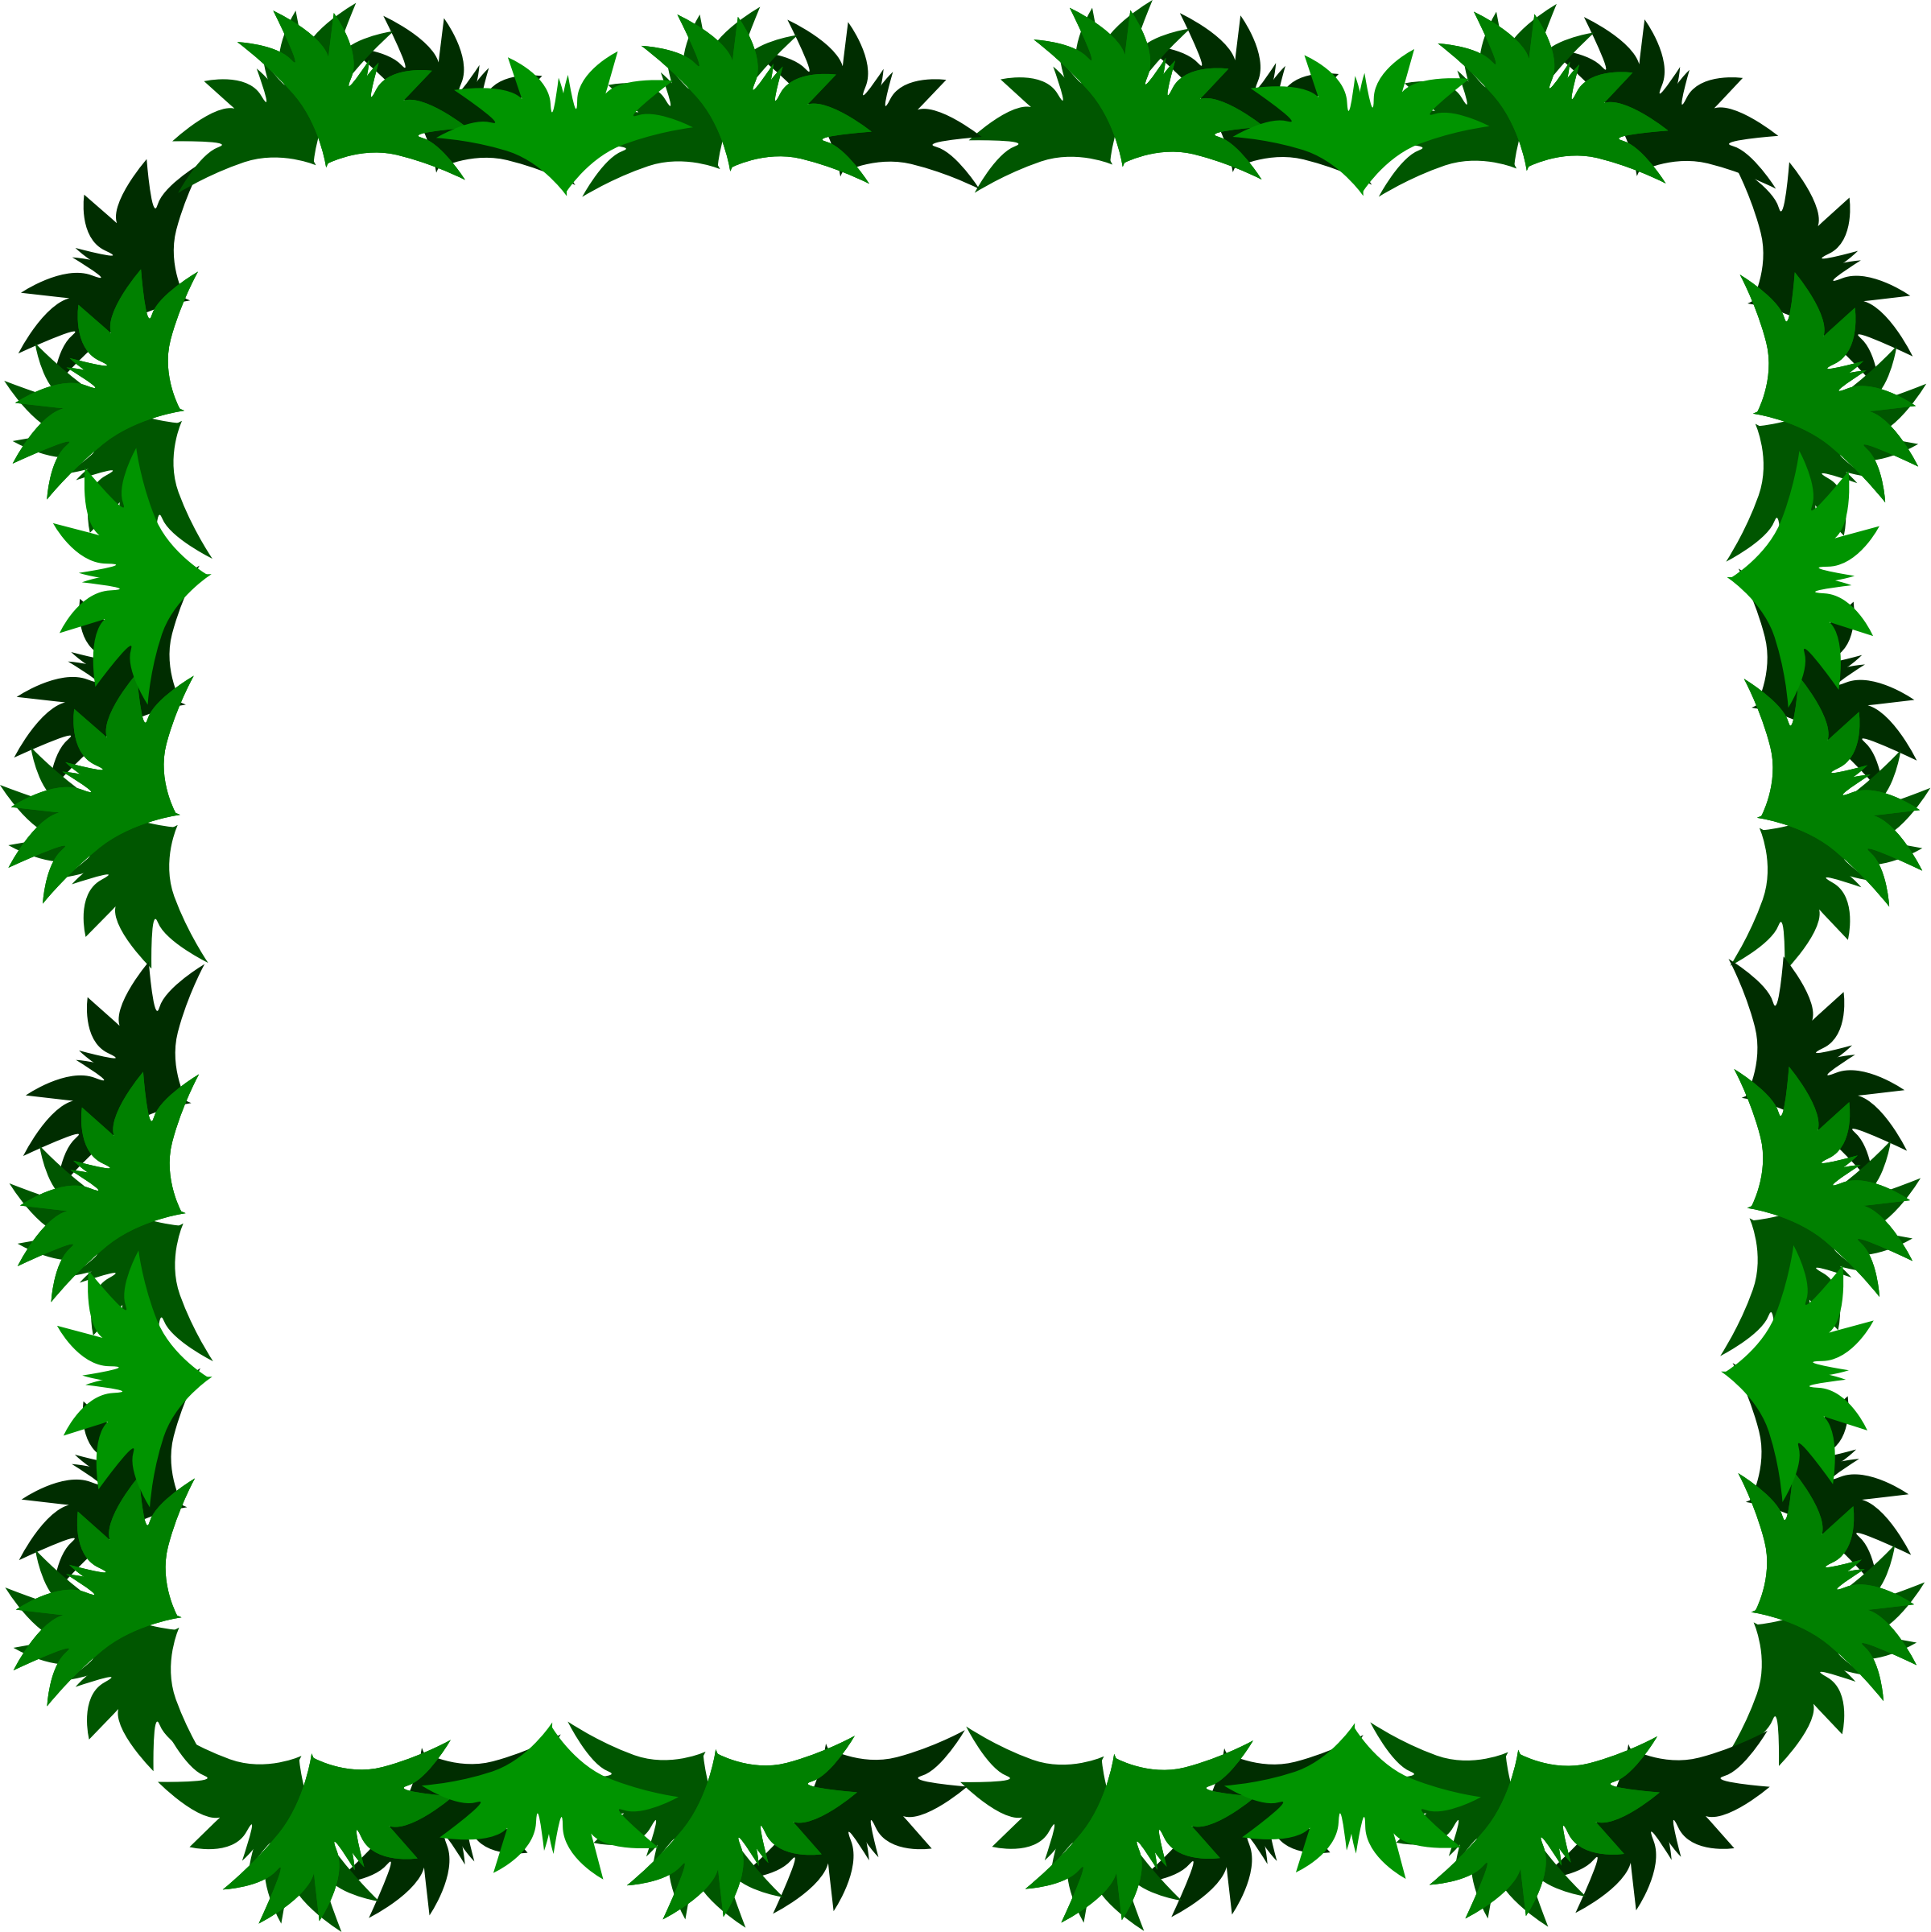 Four sided border made. Clipart frames grass